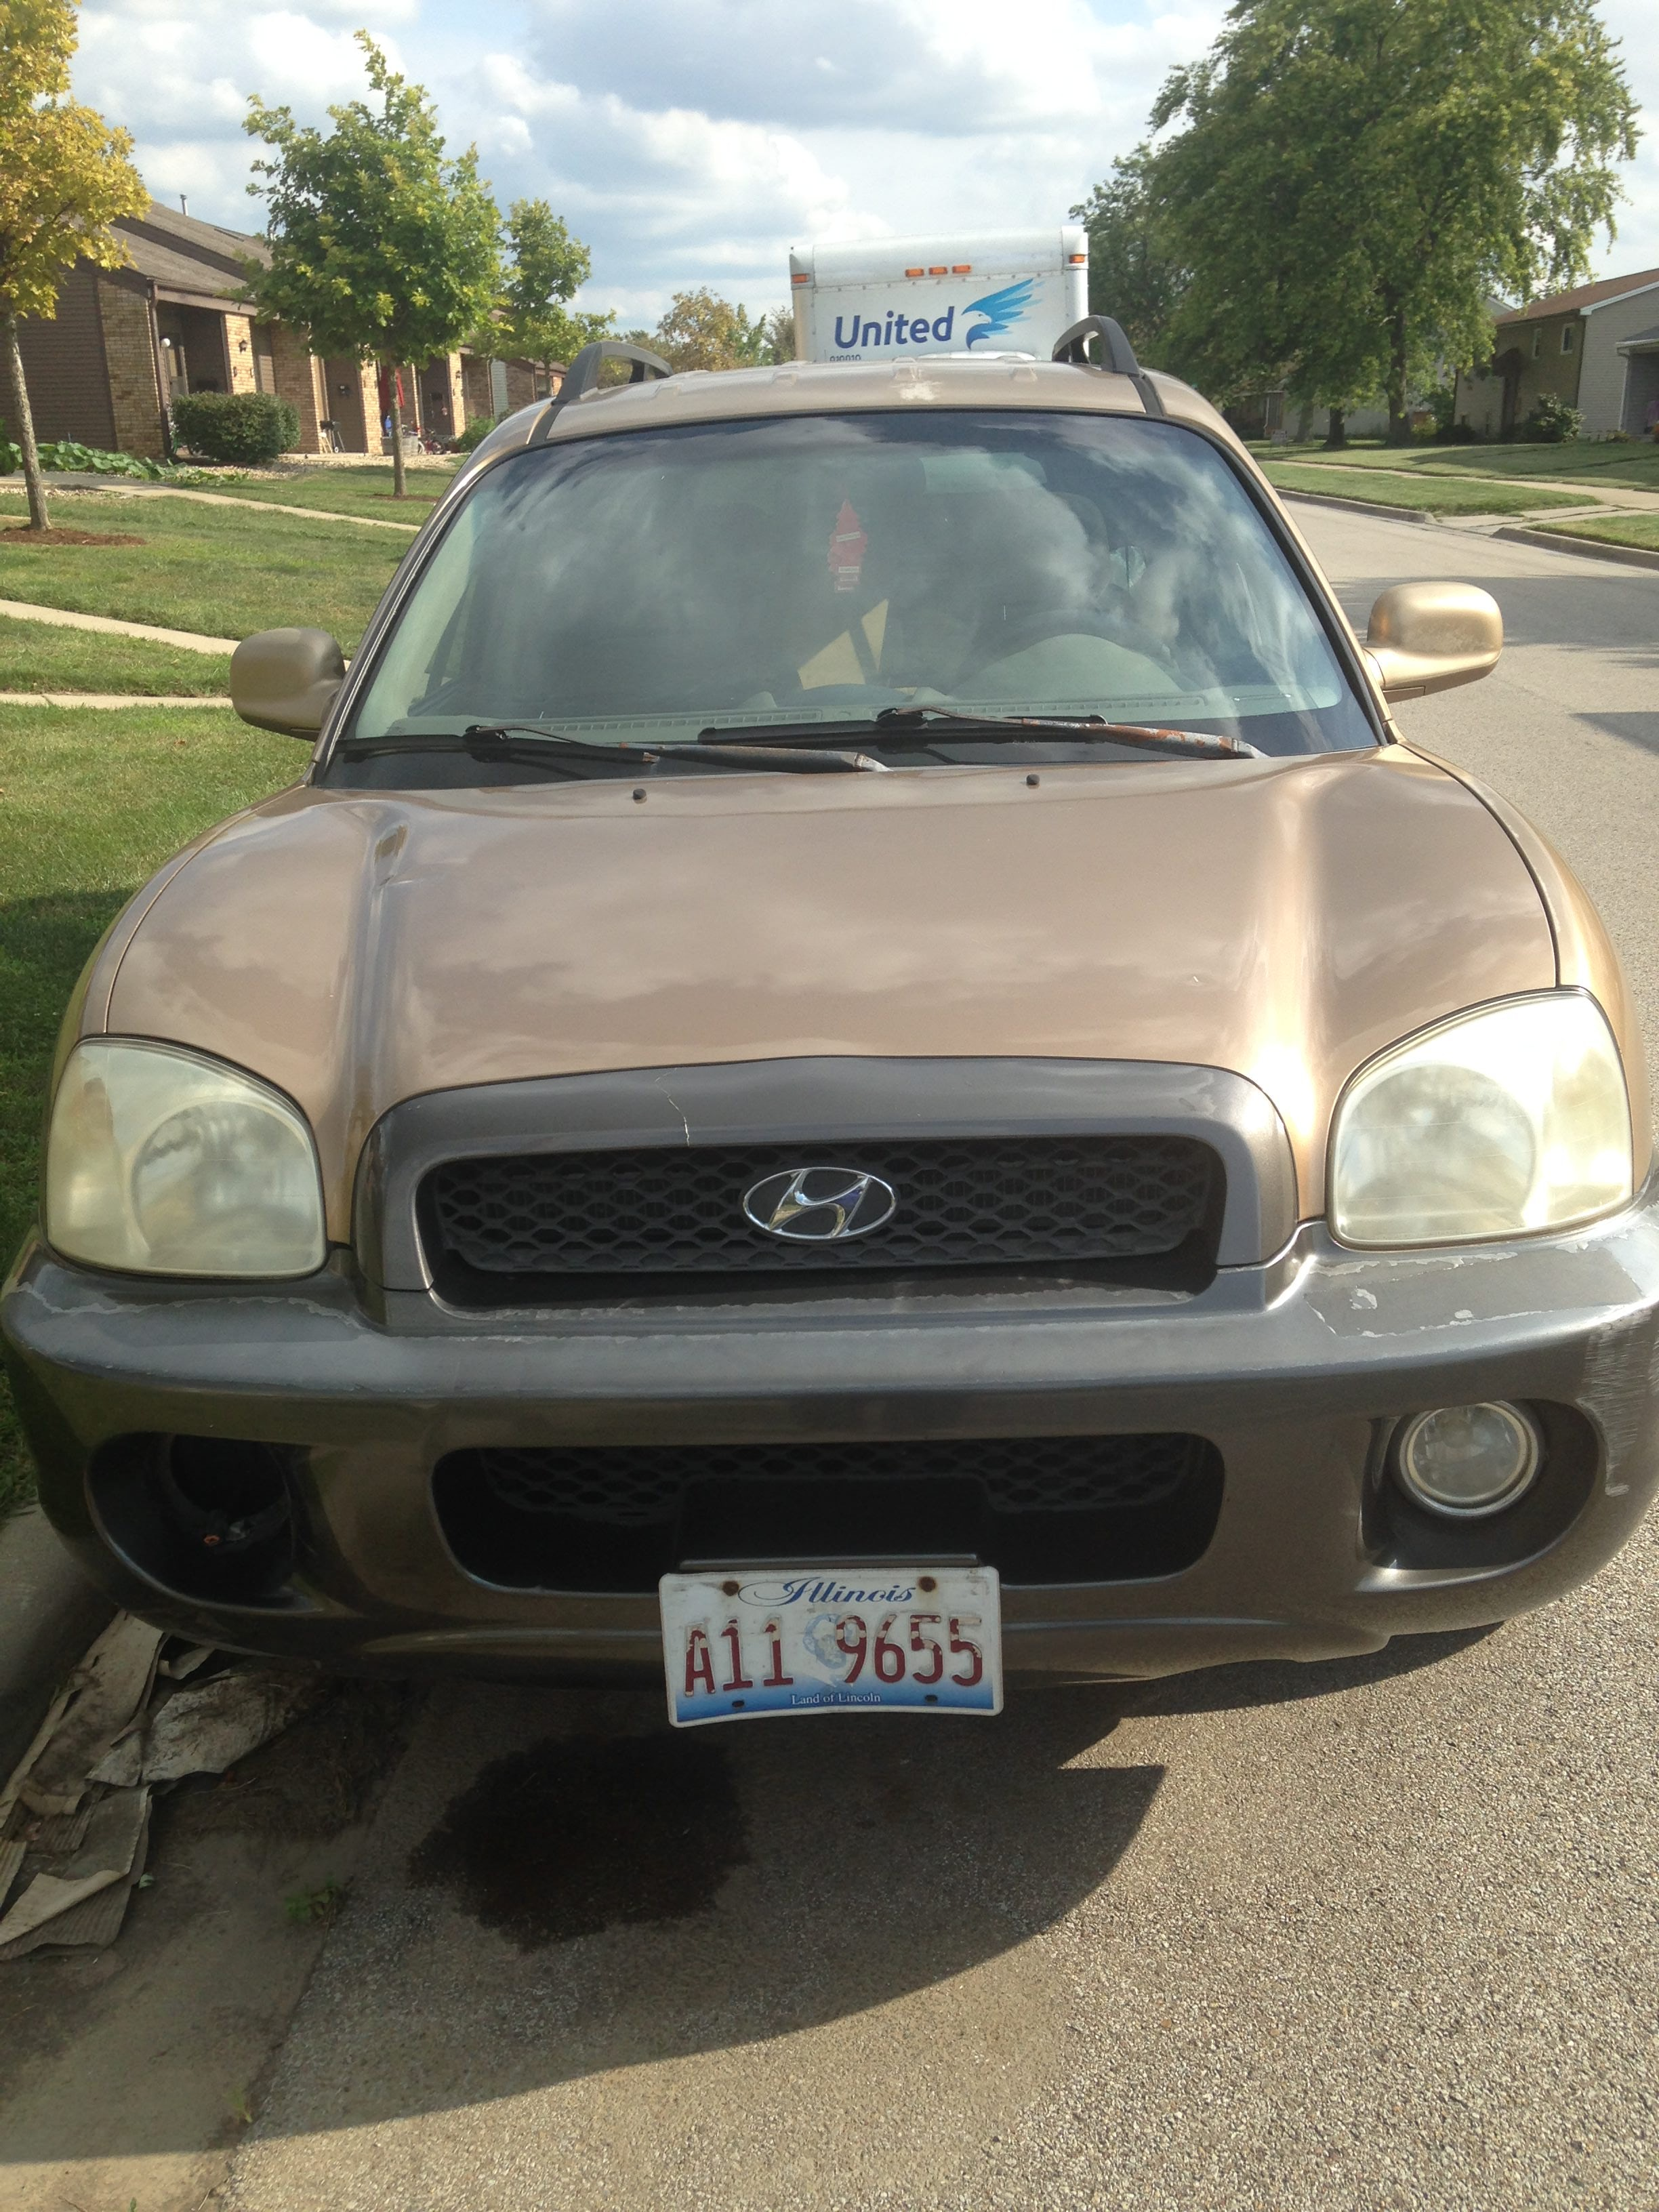 Junk 2001 Hyundai Santa Fe in Normal